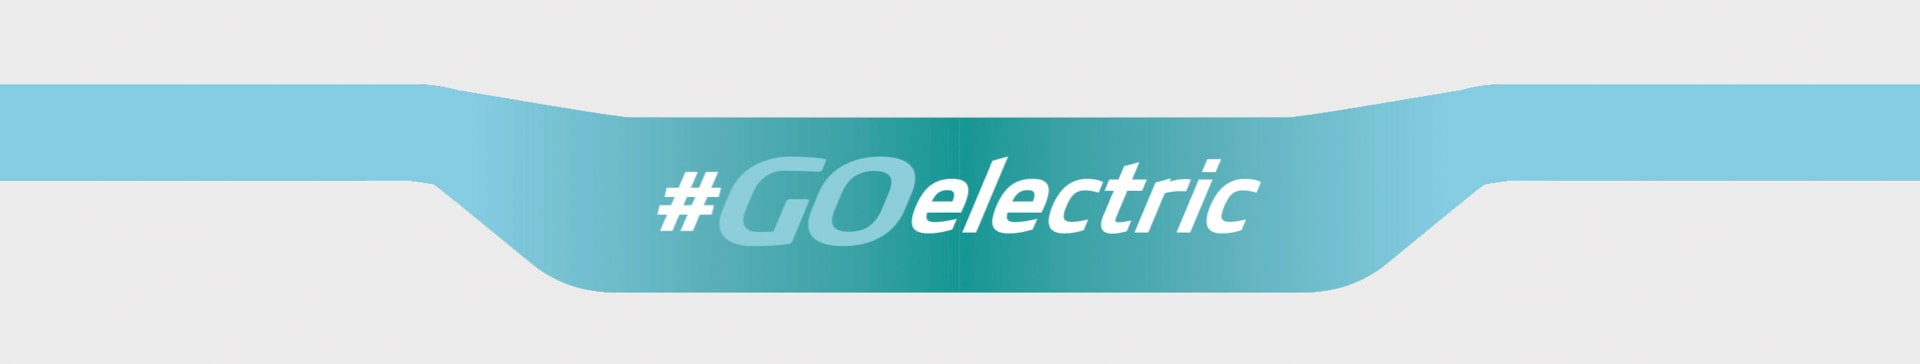 go electric banner